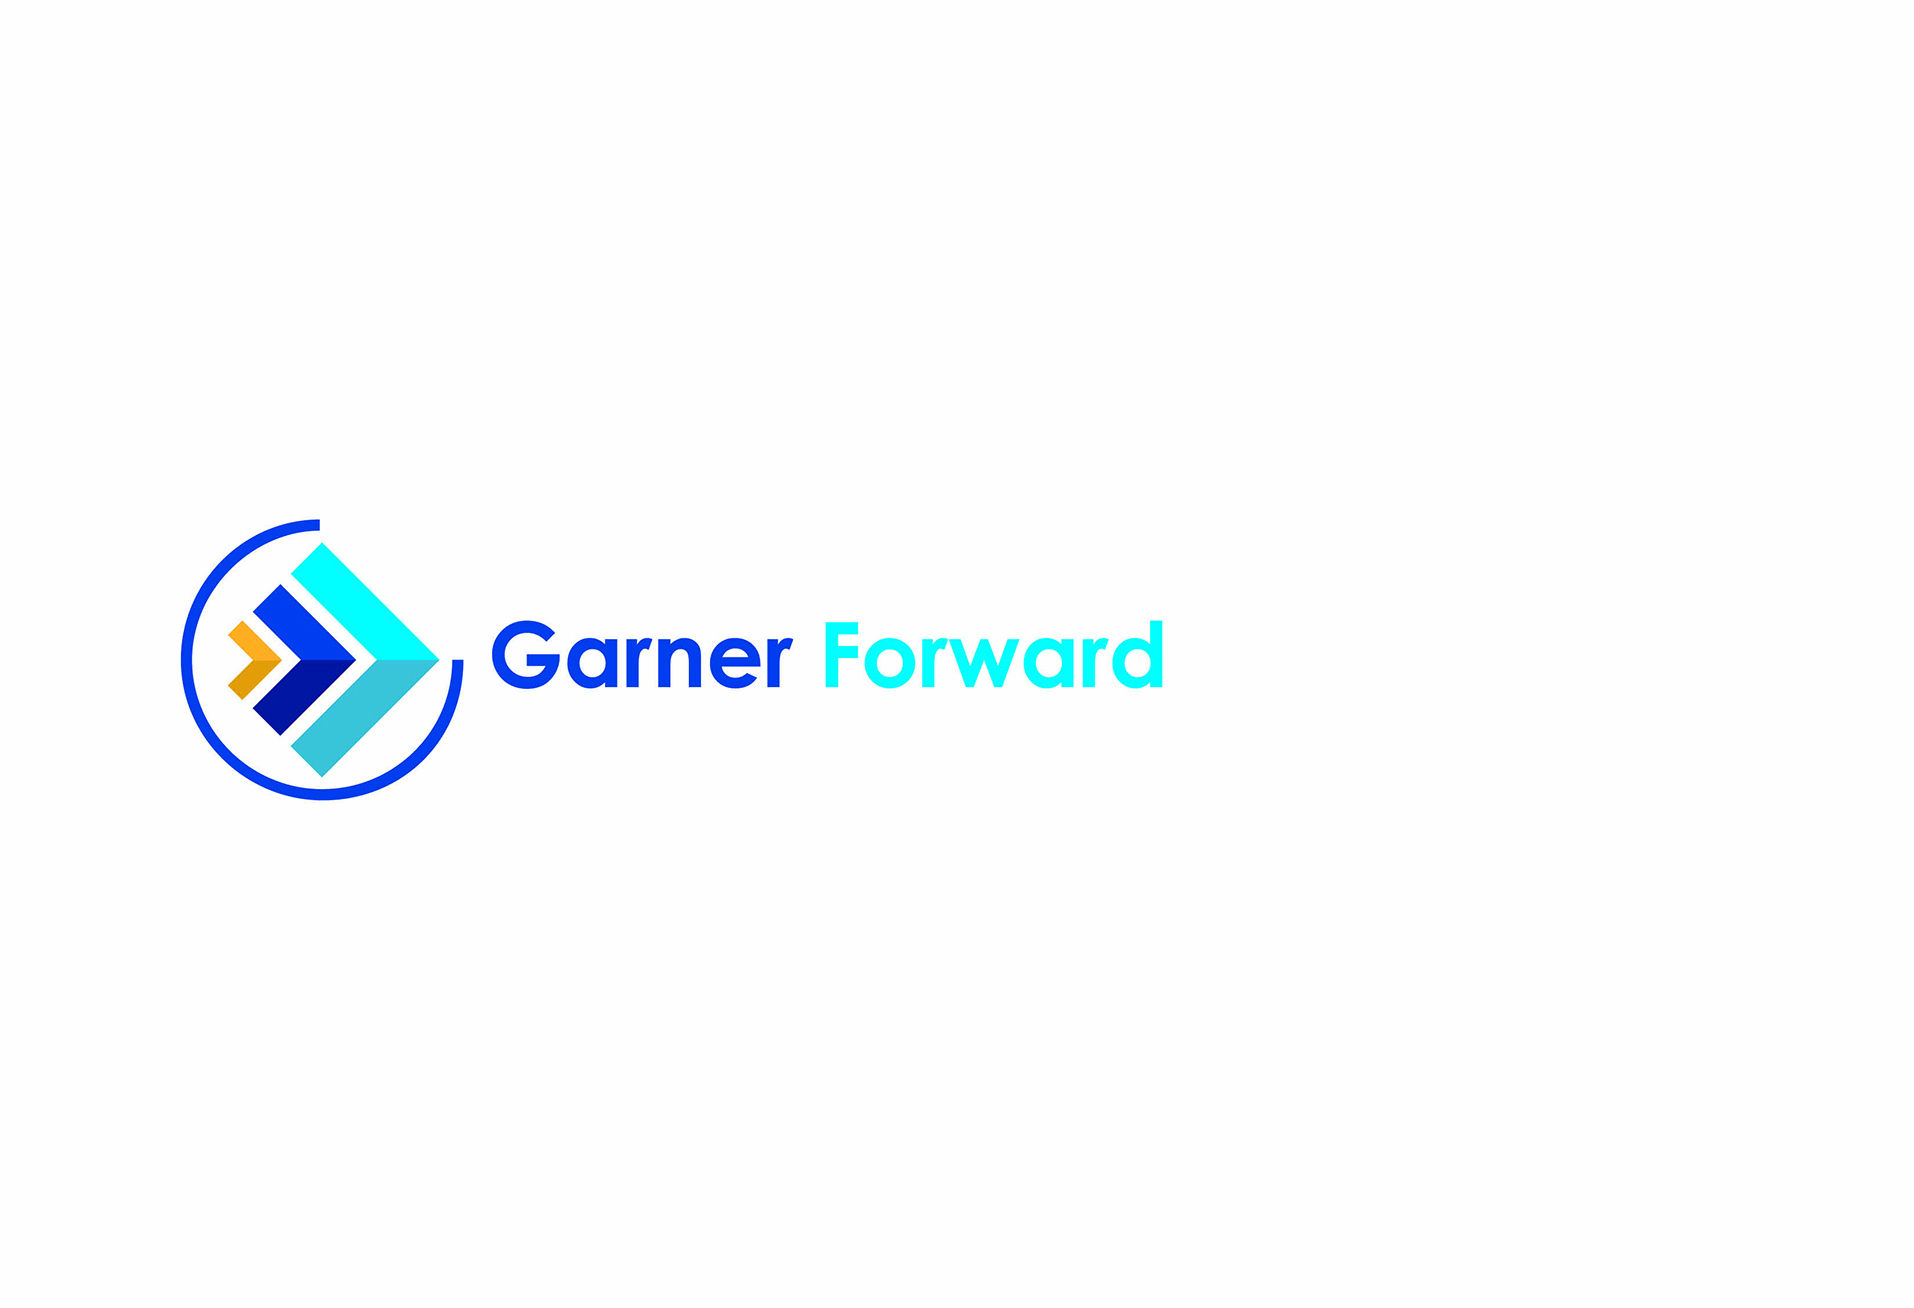 garner forward logo for WEB 3rd ALT